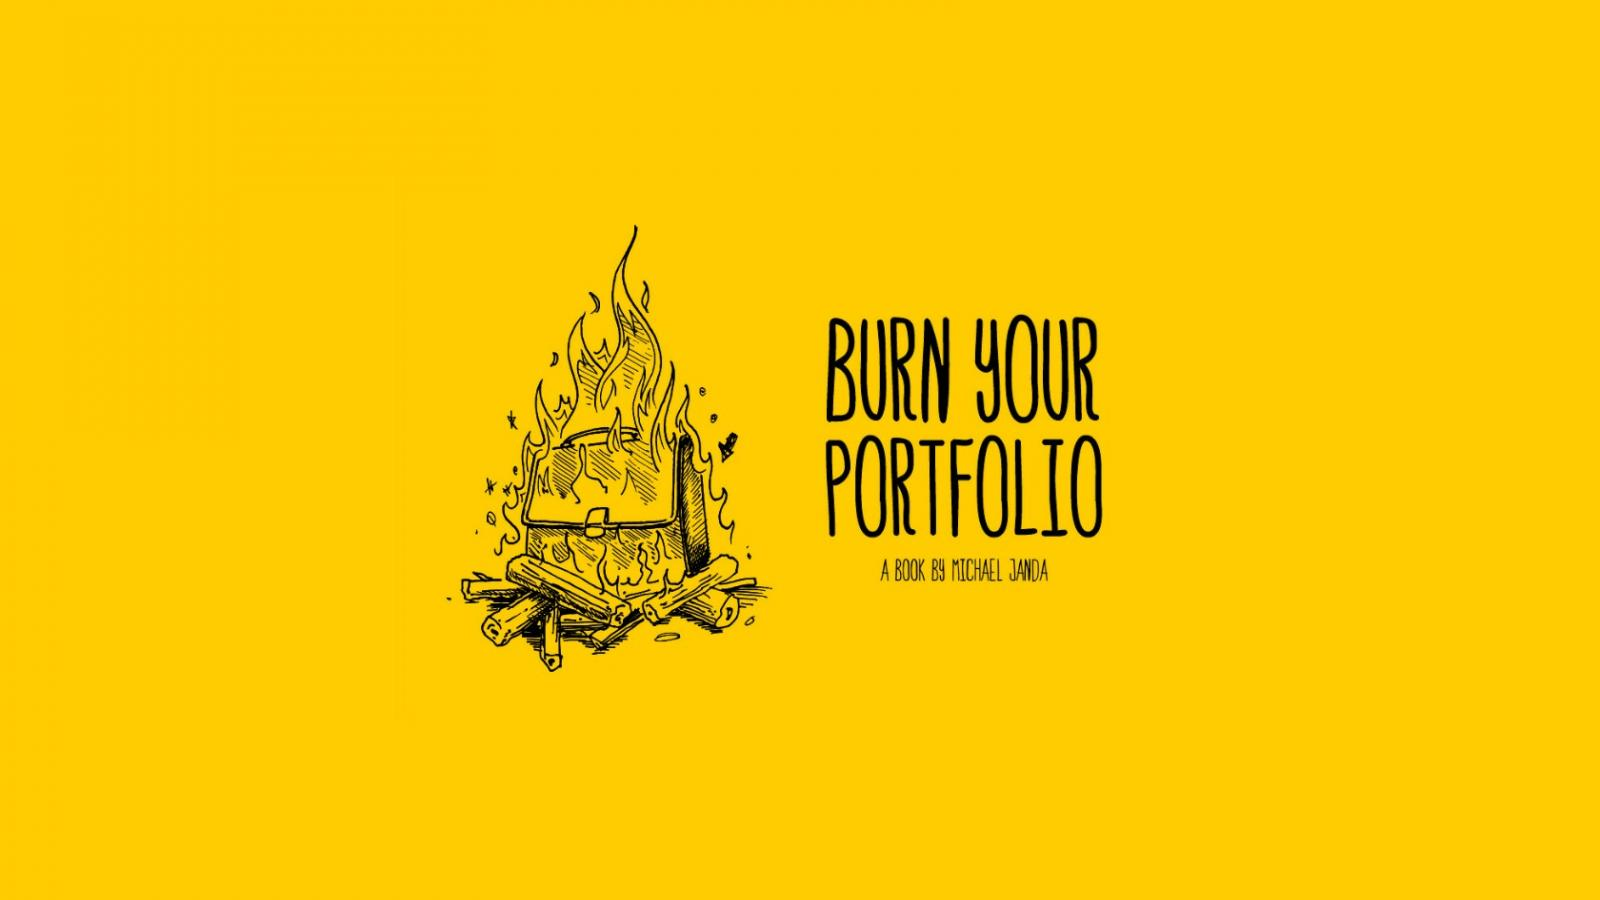 Burn Your Portfolio - Book Suggestion